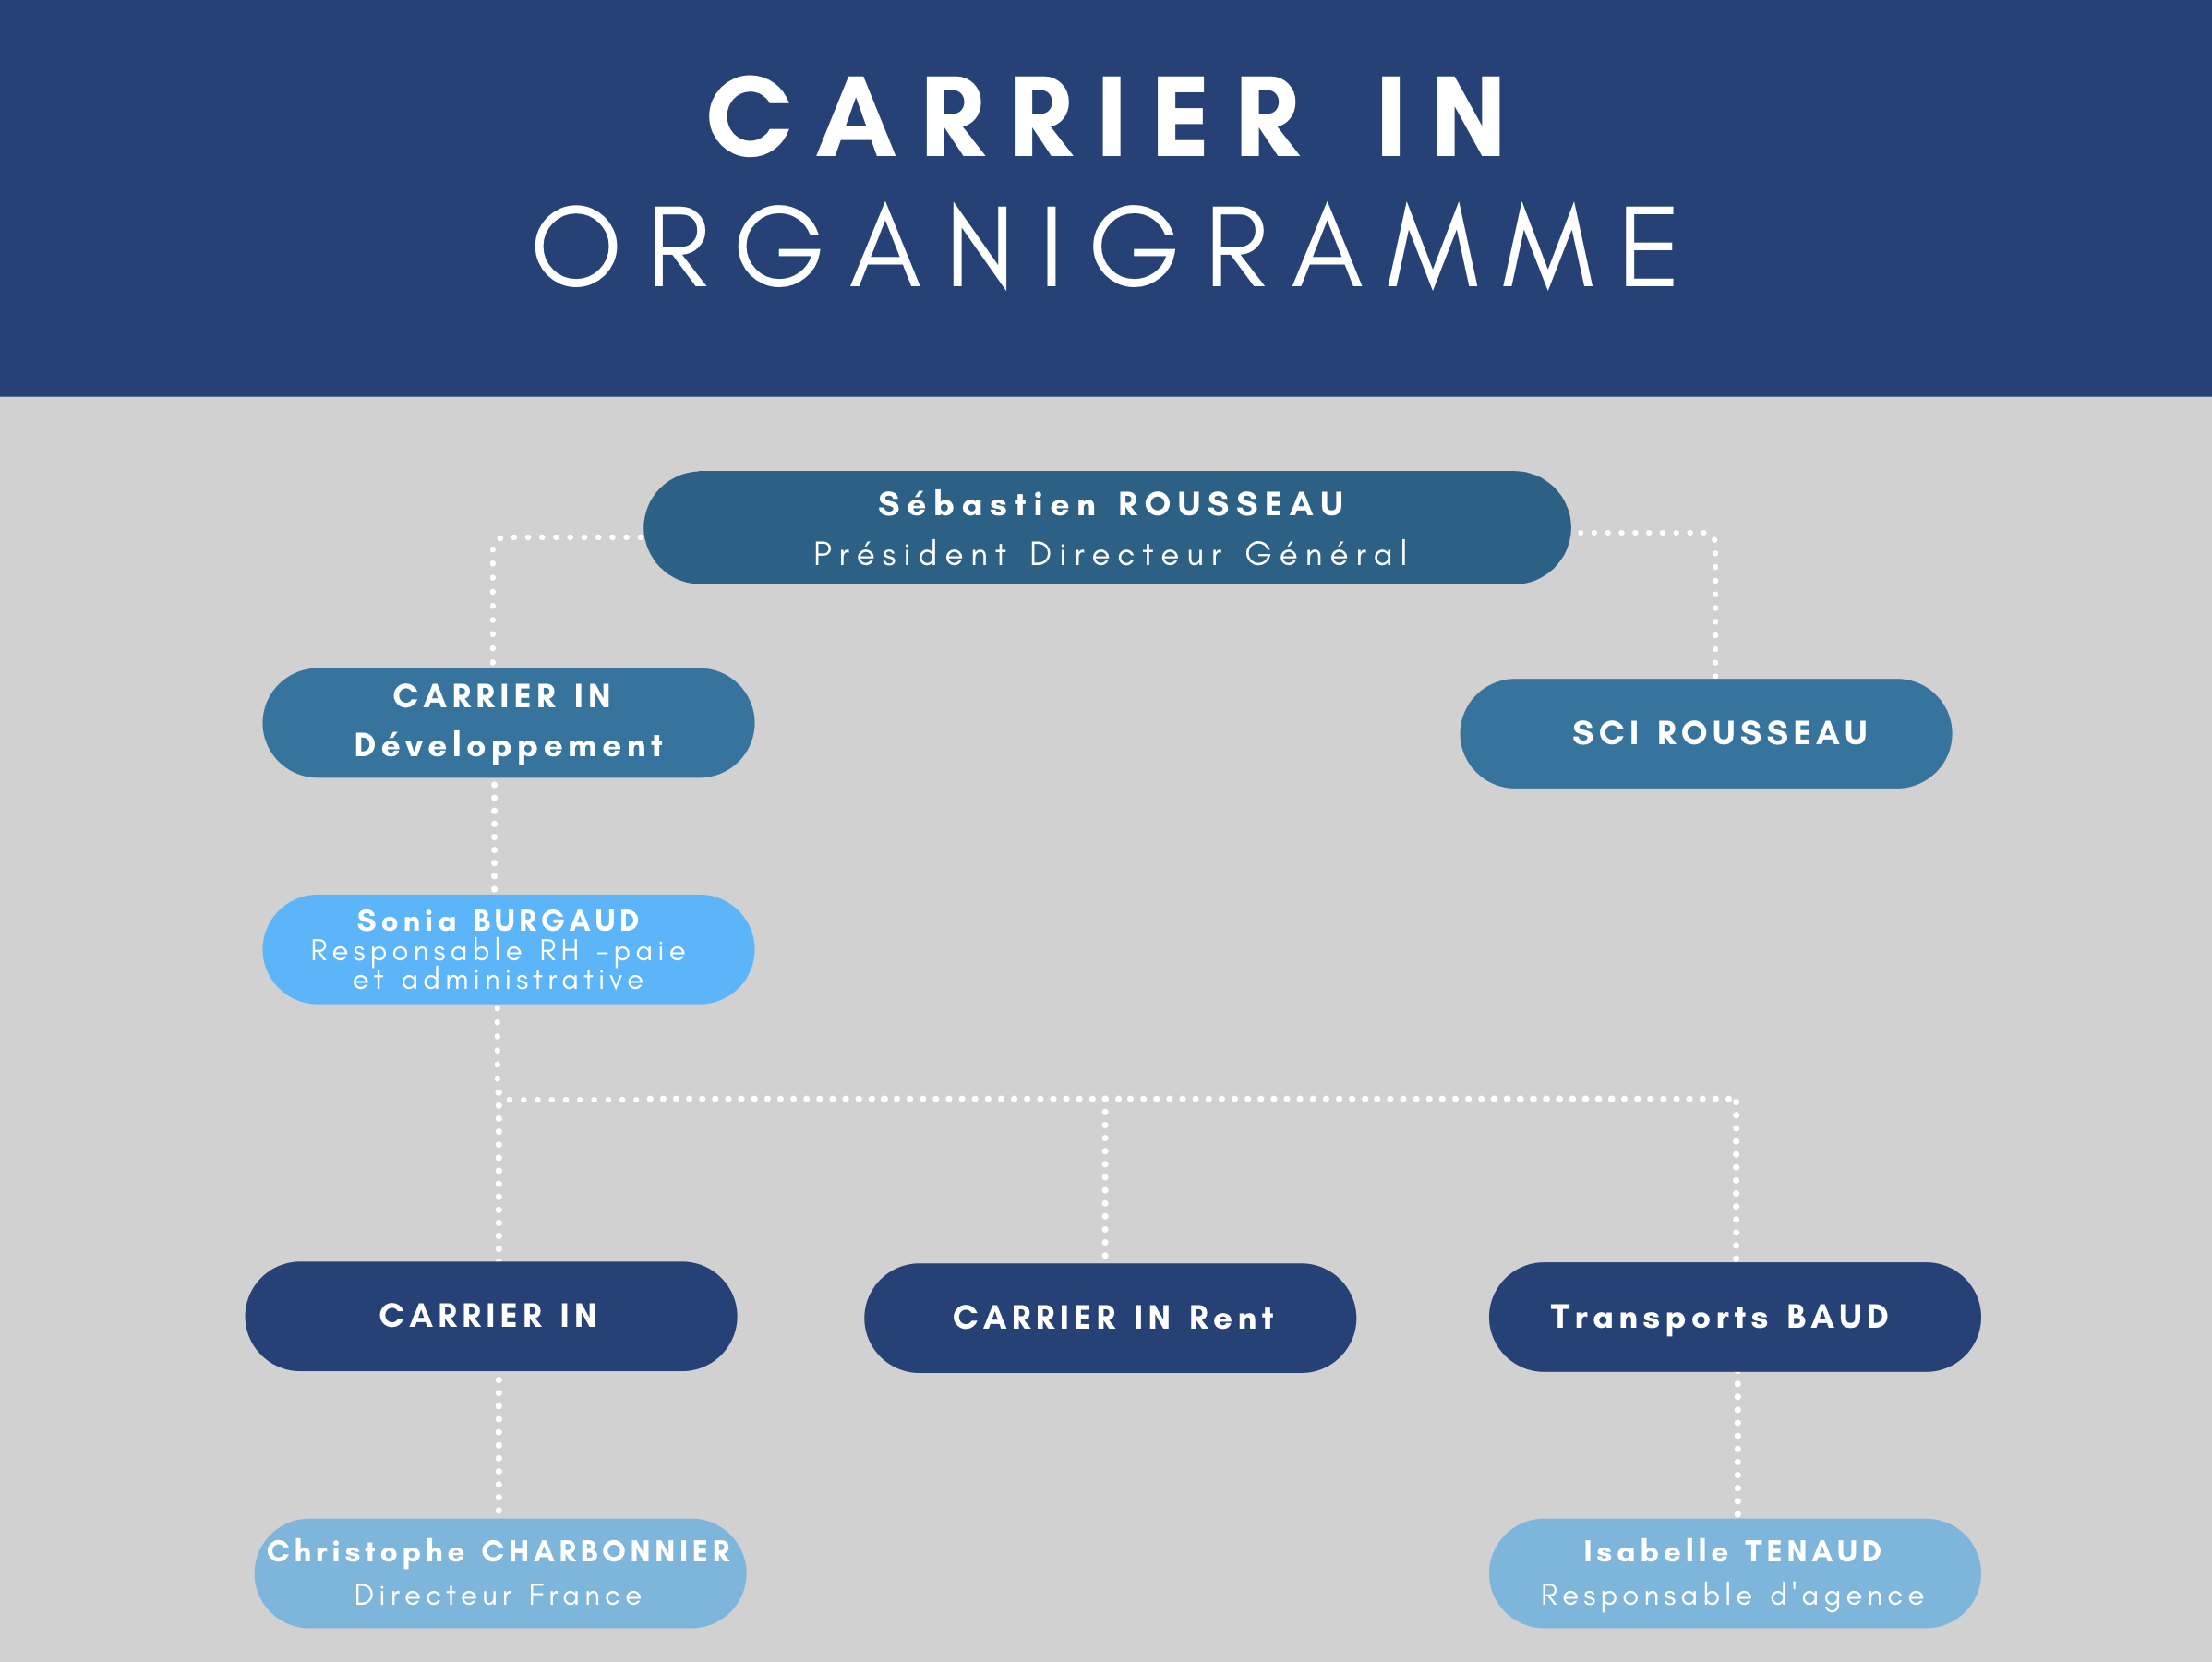 Organigramme Carrier In